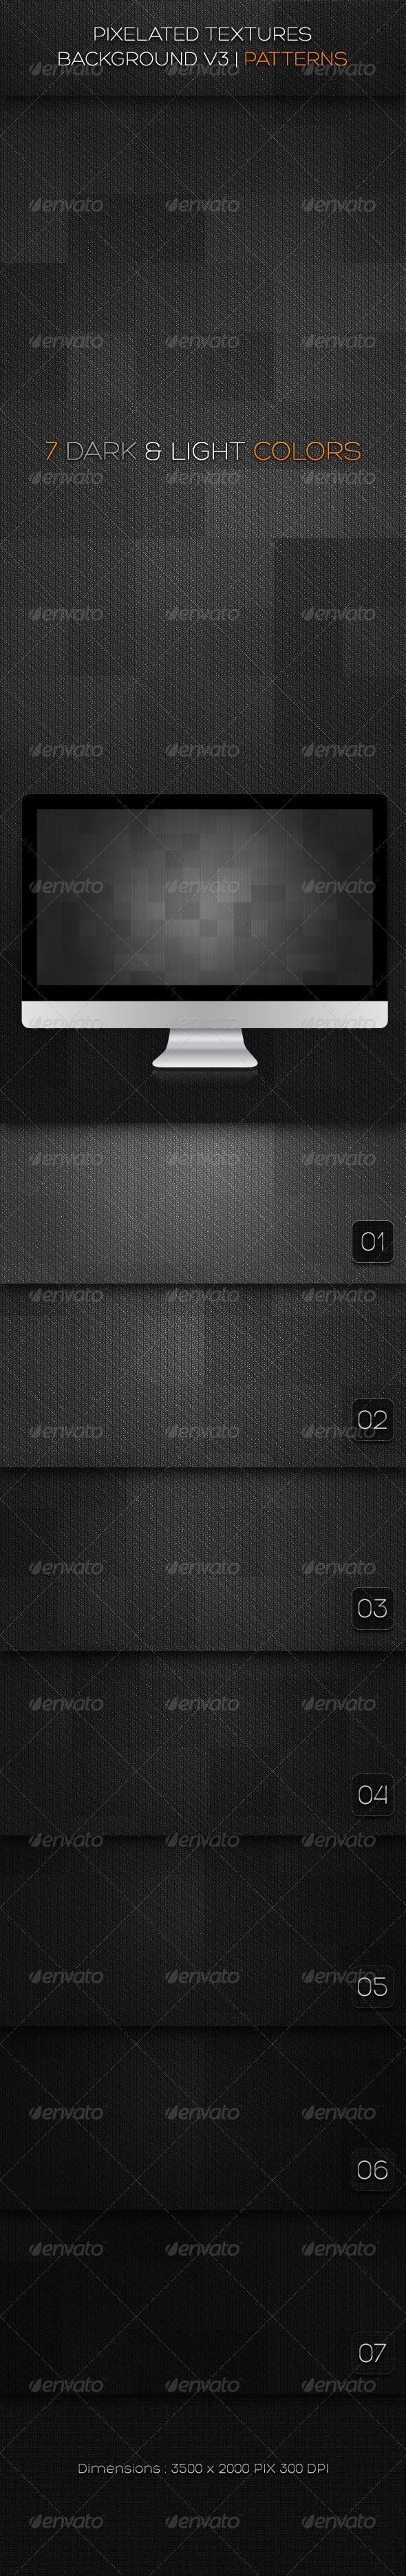 Pixelated textures background v3 | Patterns  - Patterns Backgrounds